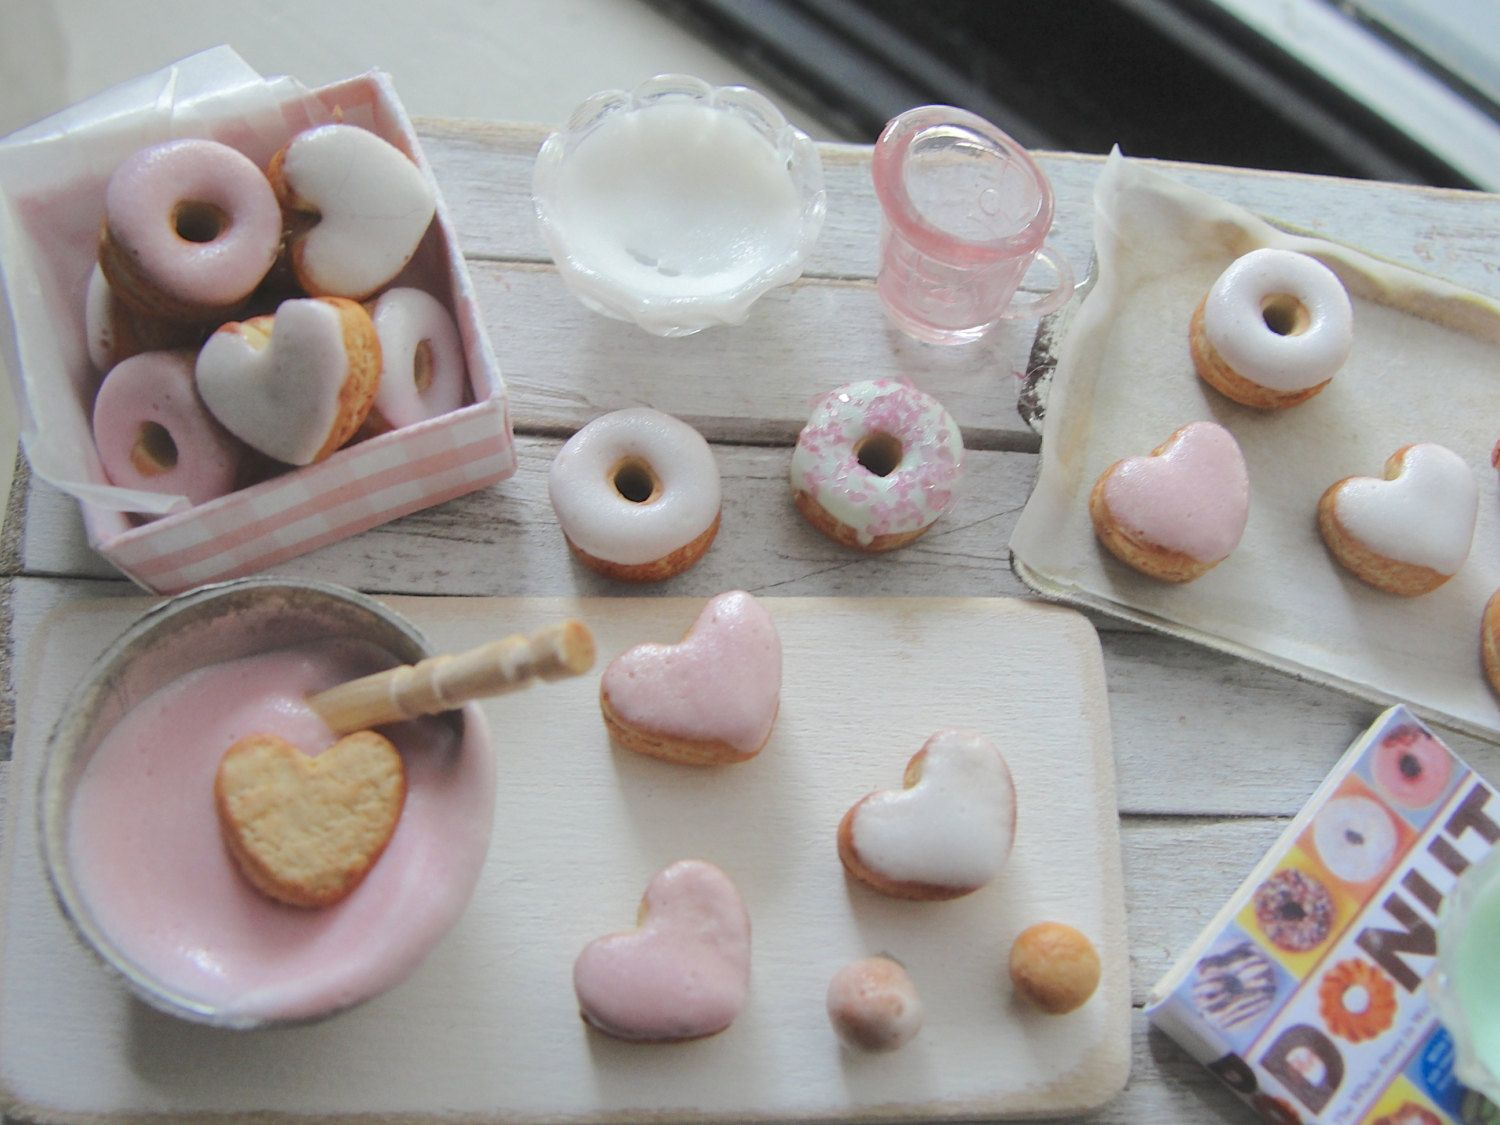 Dollhouse miniatures baking doughnuts by Kimsminibakery on Etsy